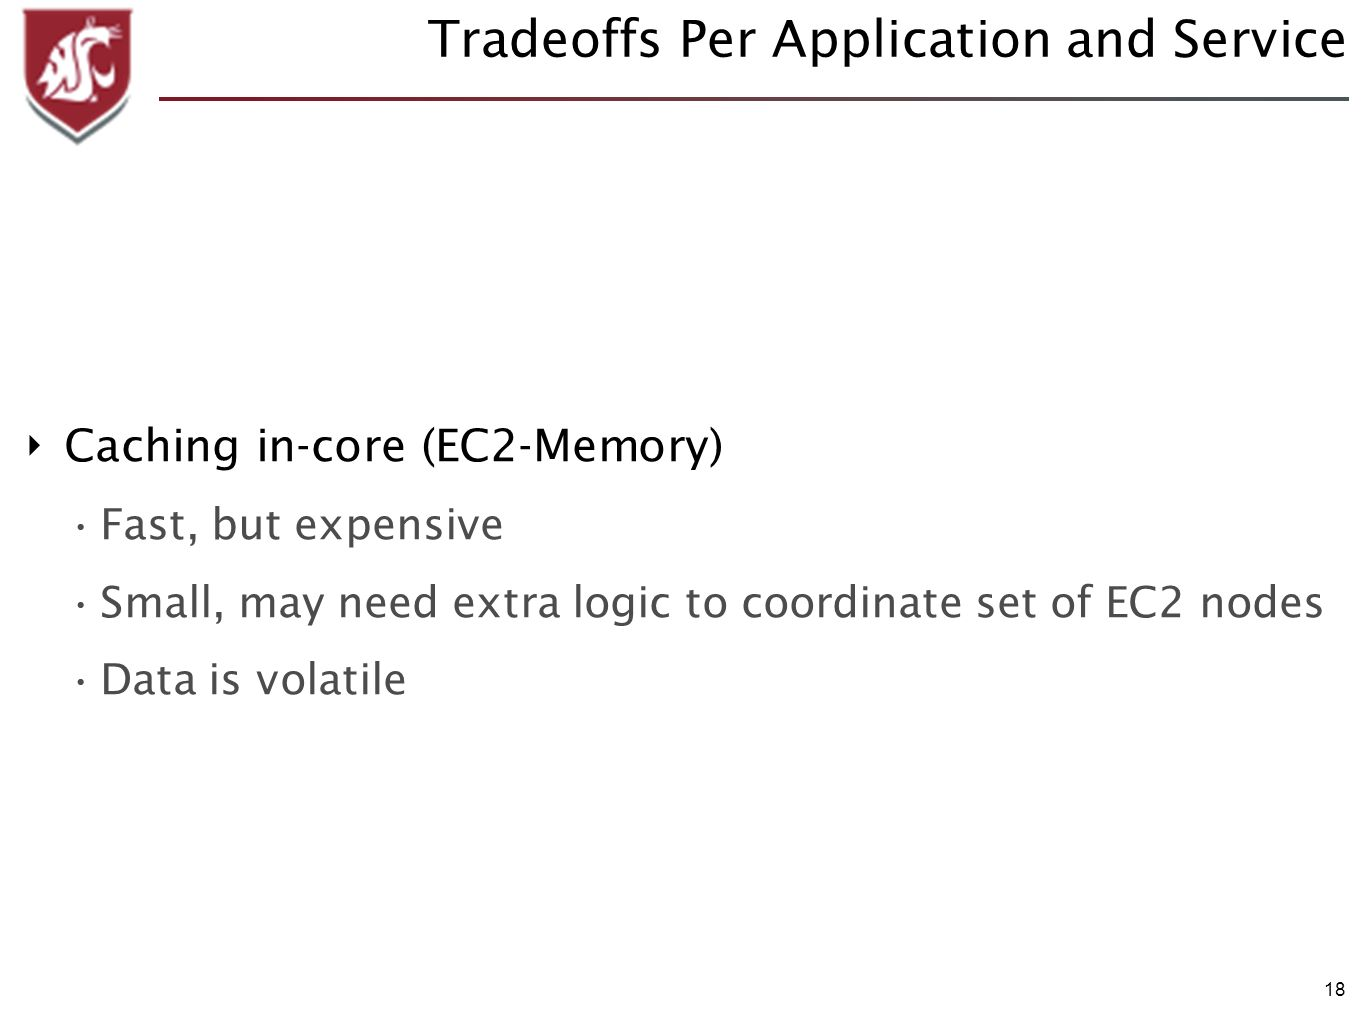 18 Tradeoffs Per Application and Service Caching in-core (EC2-Memory) Fast, but expensive Small, may need extra logic to coordinate set of EC2 nodes Data is volatile